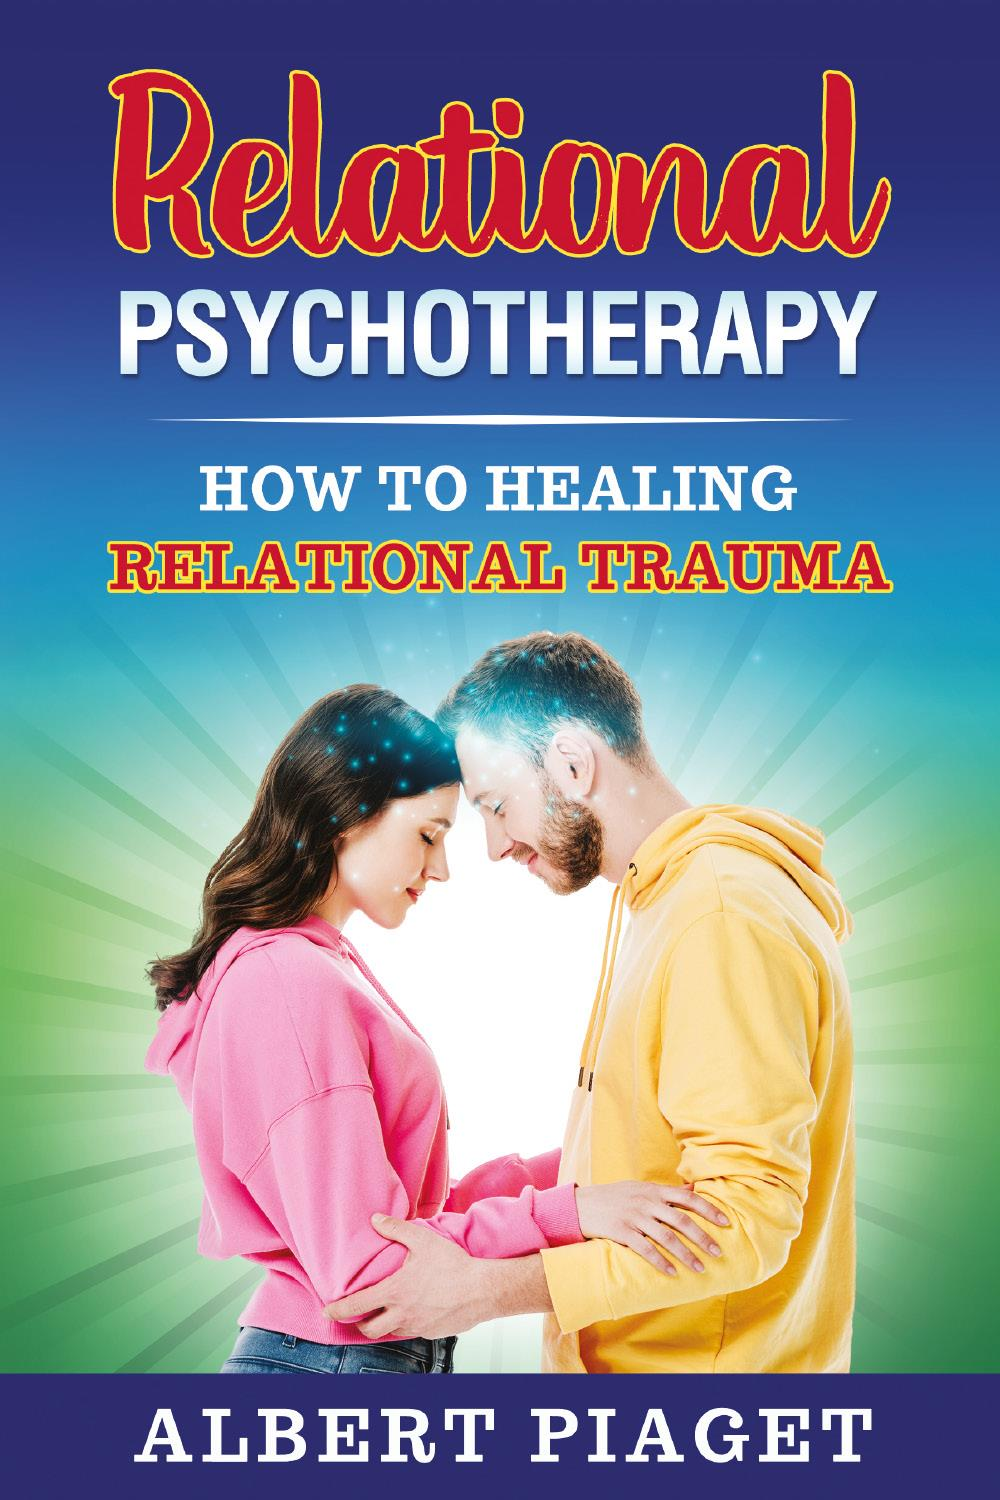 Relational Psychotherapy